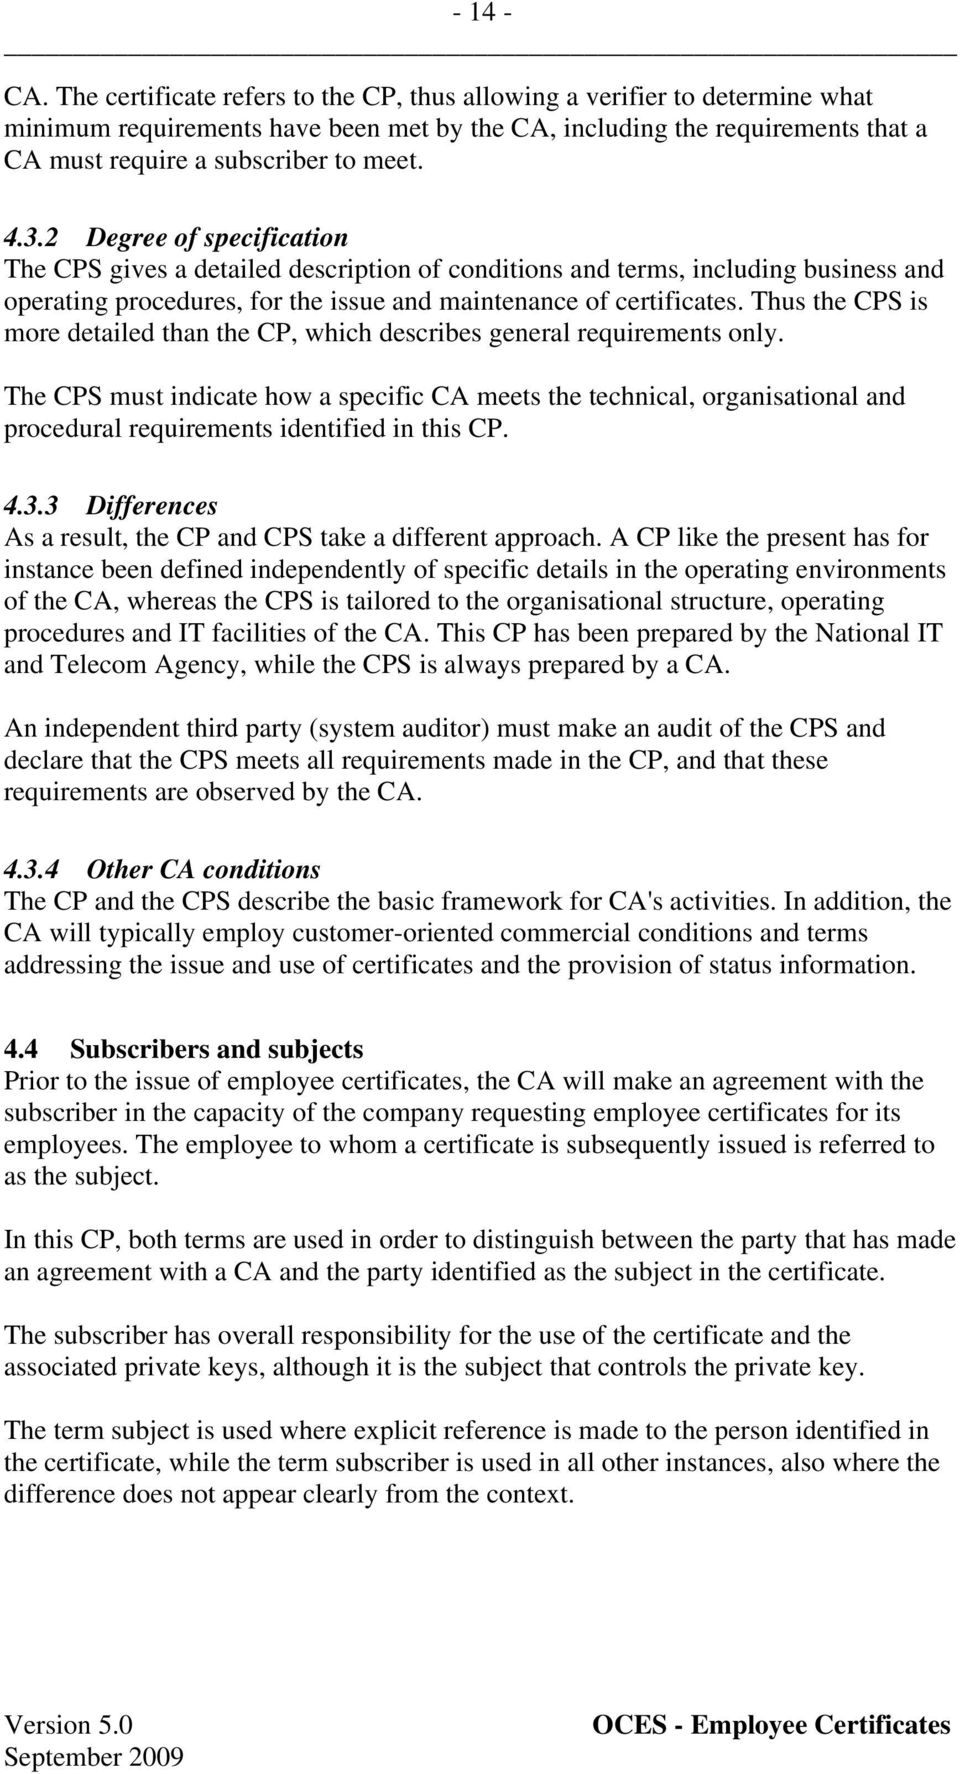 2 Degree of specification The CPS gives a detailed description of conditions and terms, including business and operating procedures, for the issue and maintenance of certificates.